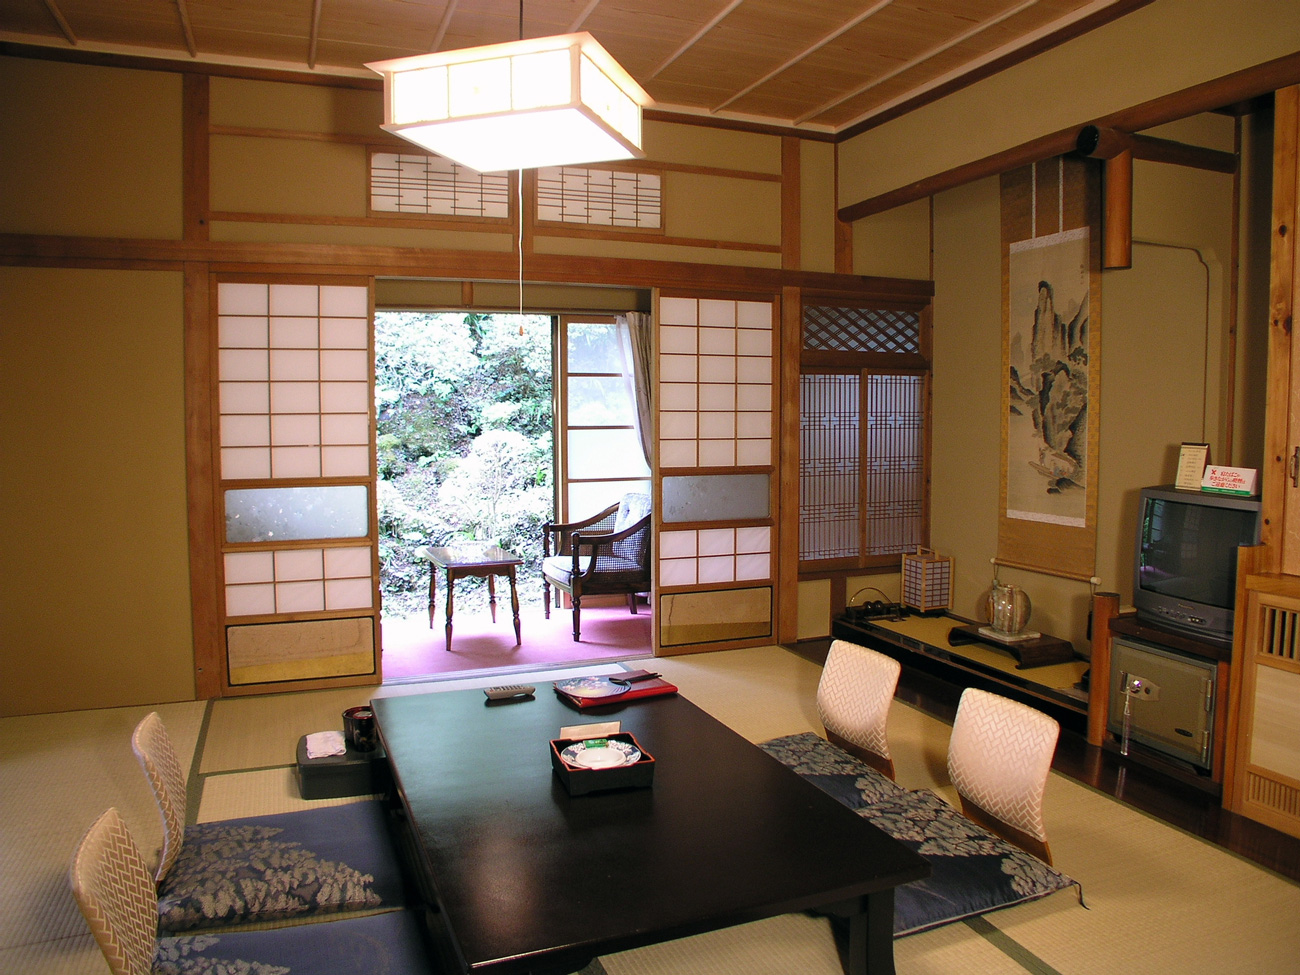 Japanese Washitsu Living Room Japan Pinterest: asian style homes